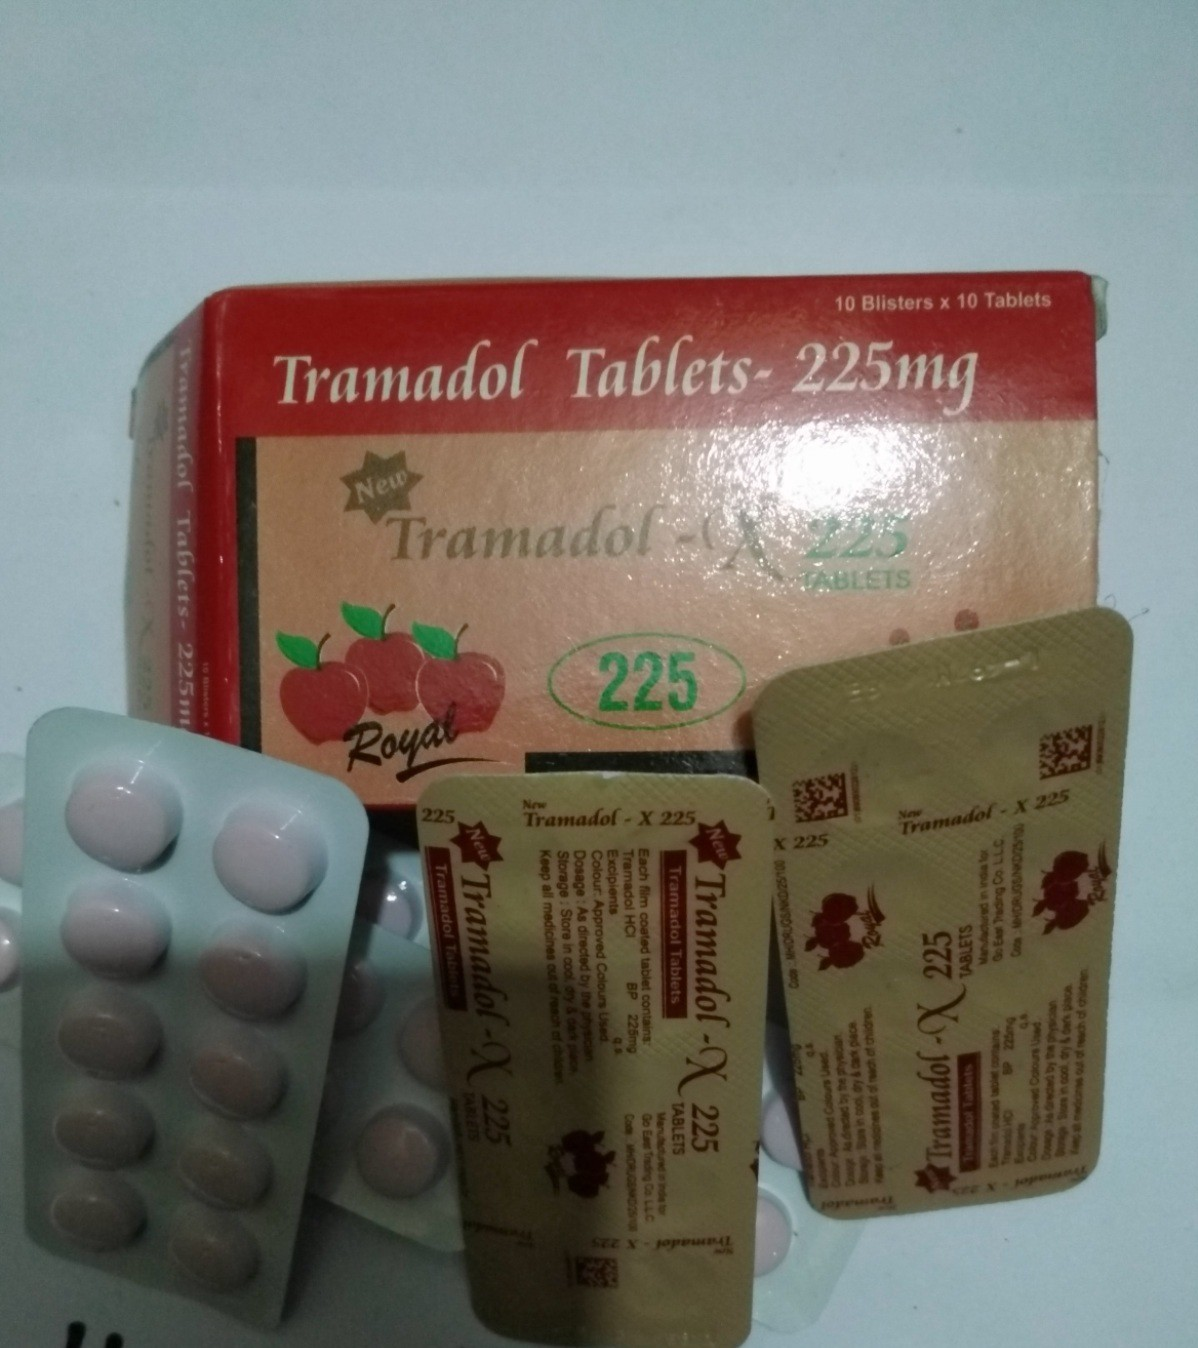 Tramadol 225 Mg Tablets For Sale